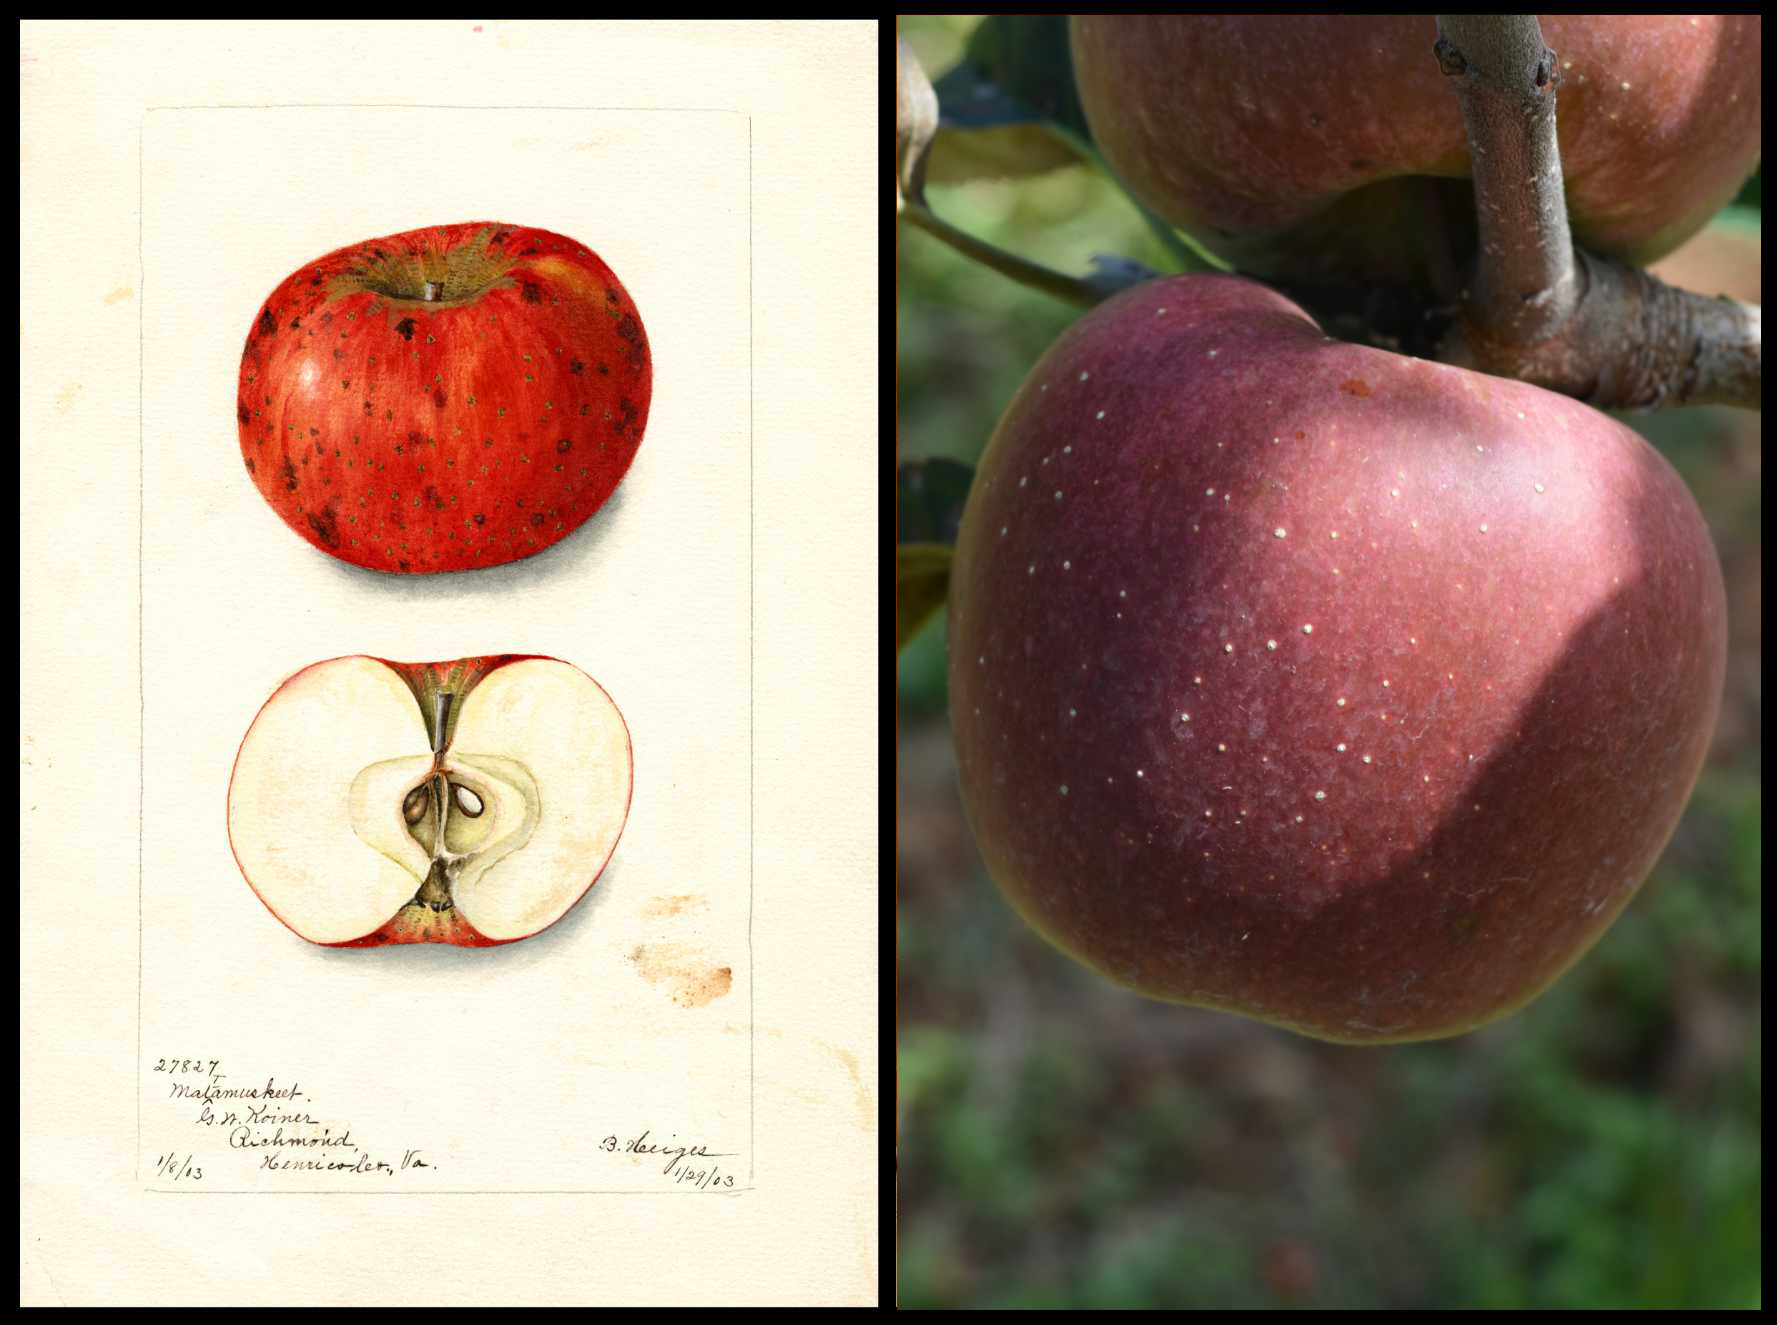 red apple with small white spots